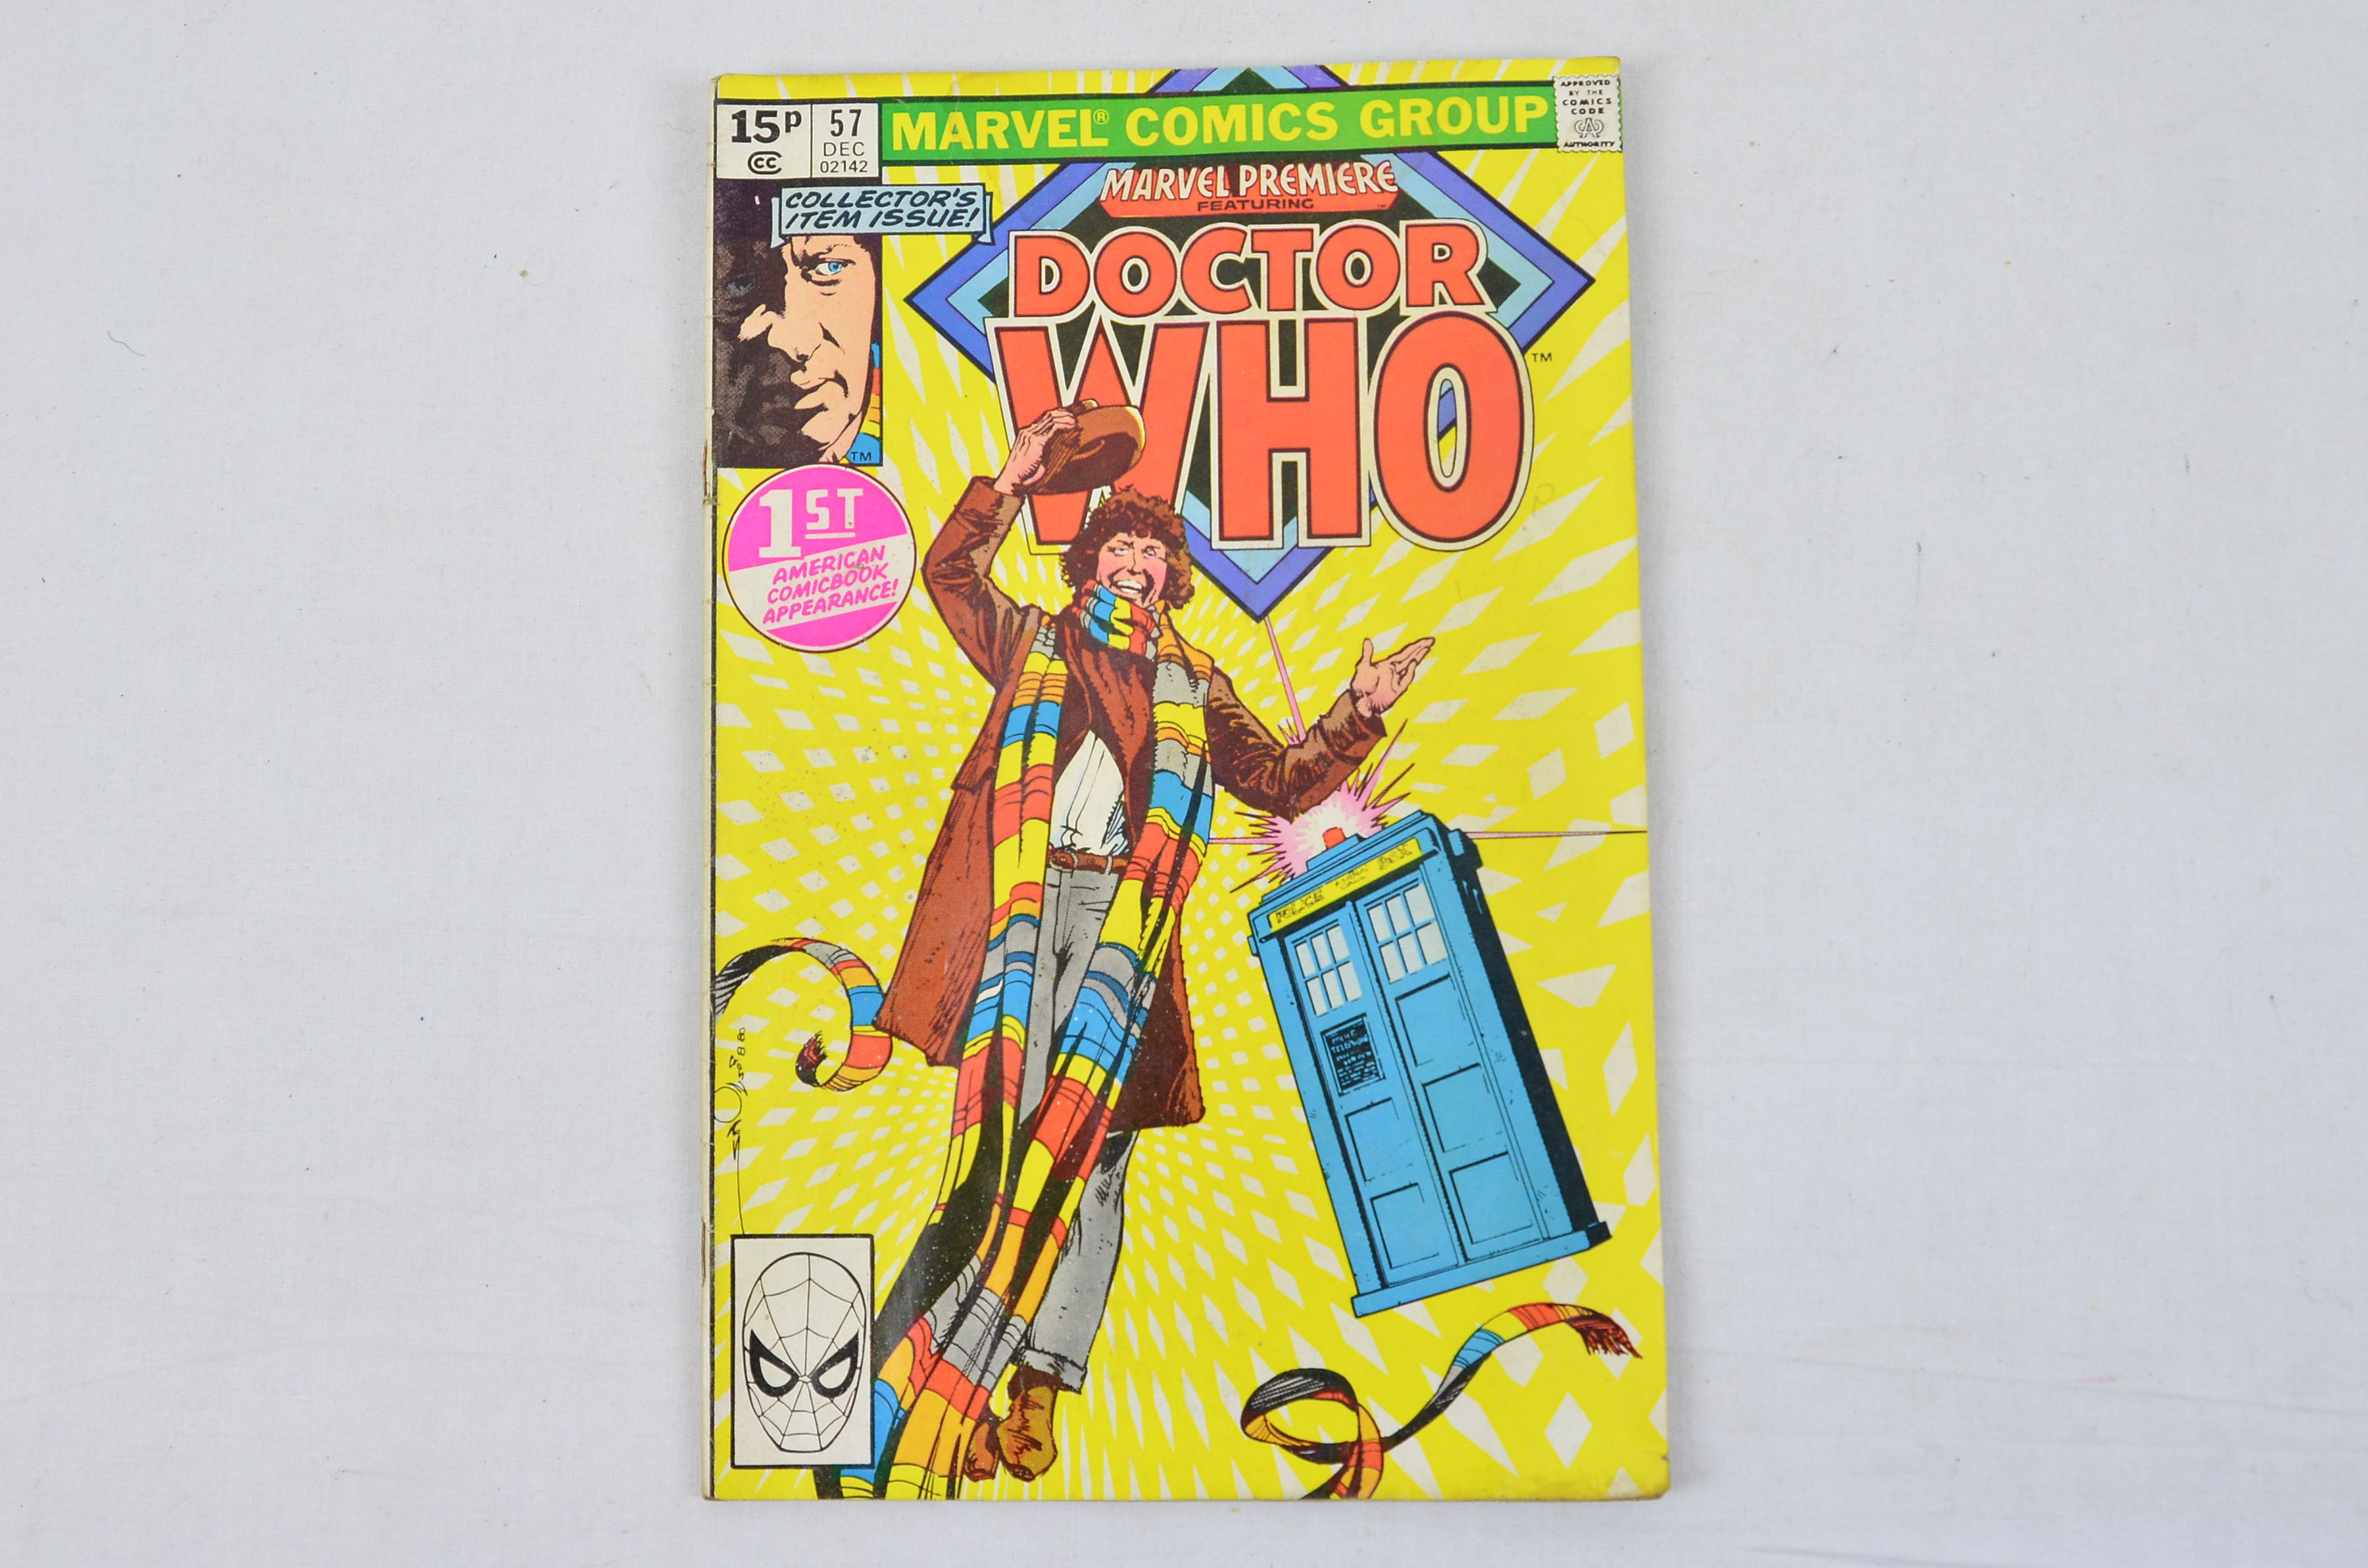 Vintage Marvel Comics Group Marvel Premiere Featuring: Doctor Who Collectable Thumbnail 1